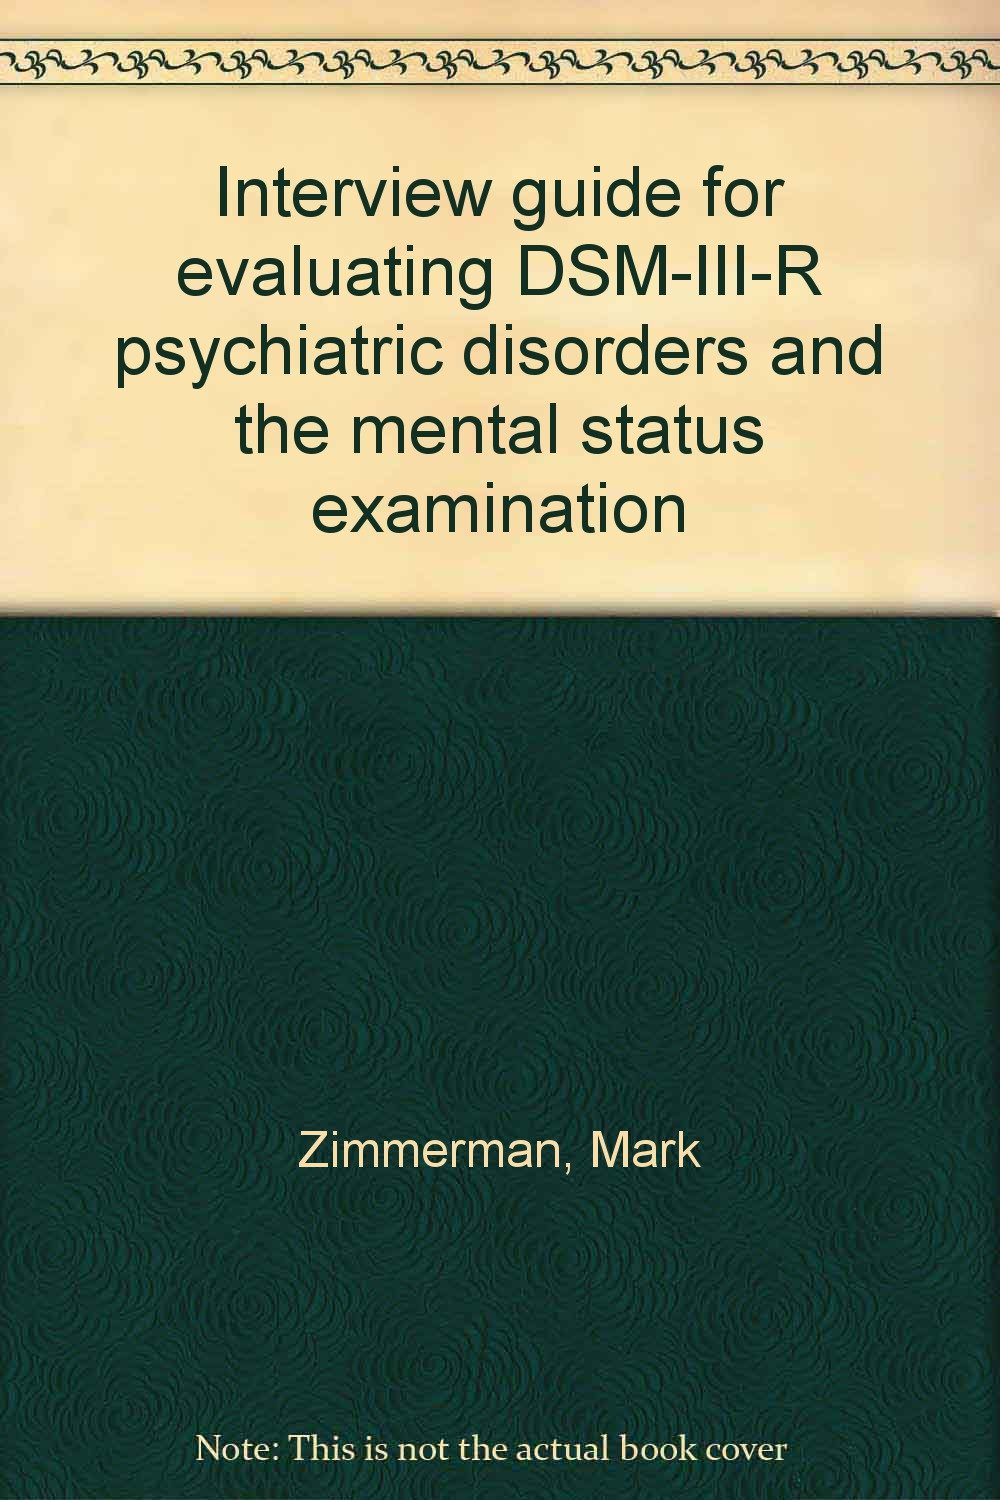 Interview guide for evaluating DSM-III-R psychiatric disorders and the  mental status examination: Mark Zimmerman: 9780963382108: Amazon.com: Books